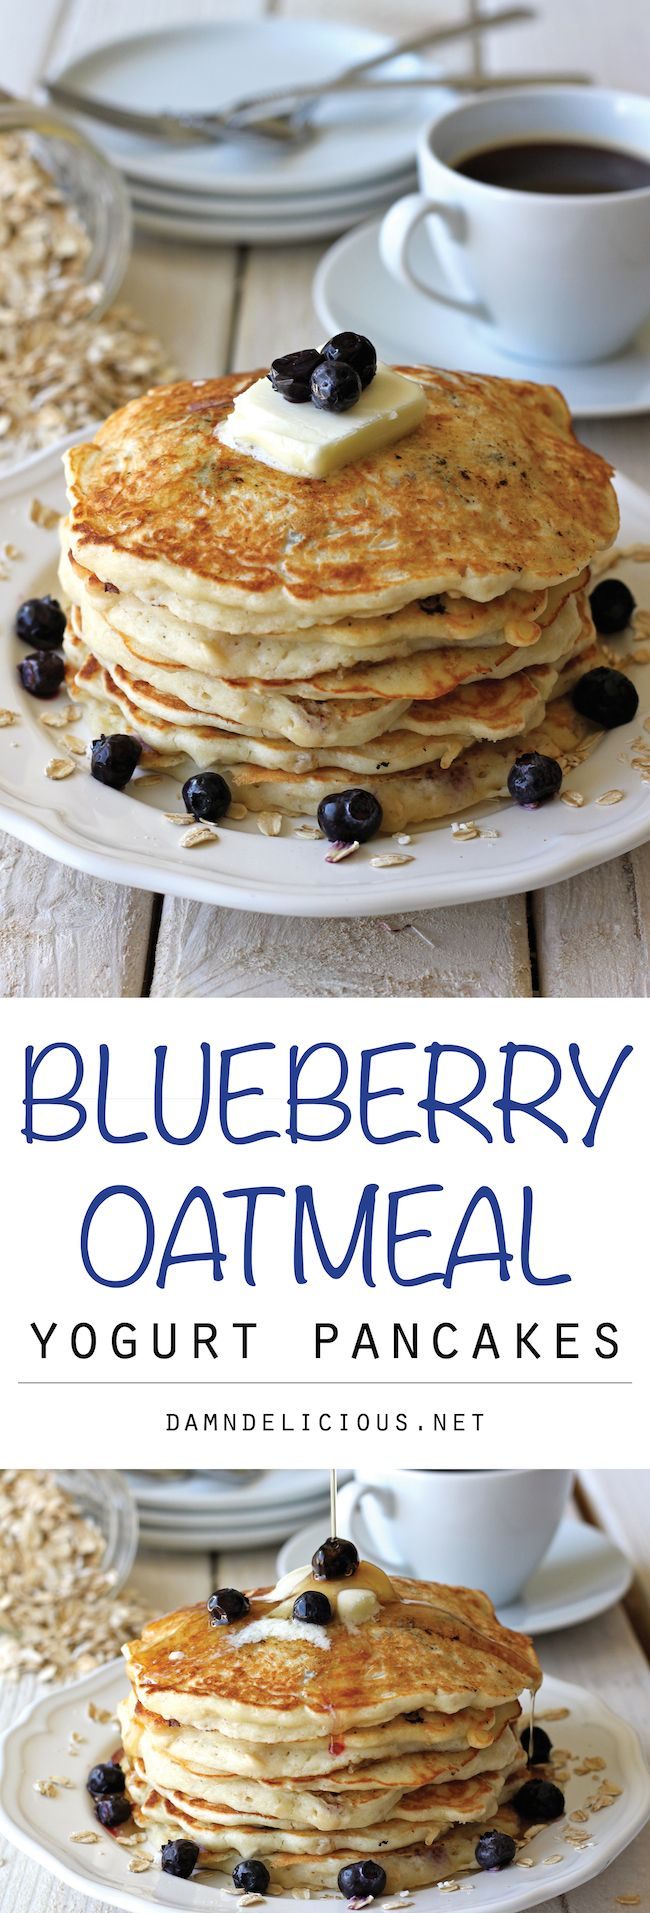 Blueberry Oatmeal Yogurt Pancakes - Start your mornings off right with these light and fluffy, healthy pancakes chockfull of juicy blueberries!